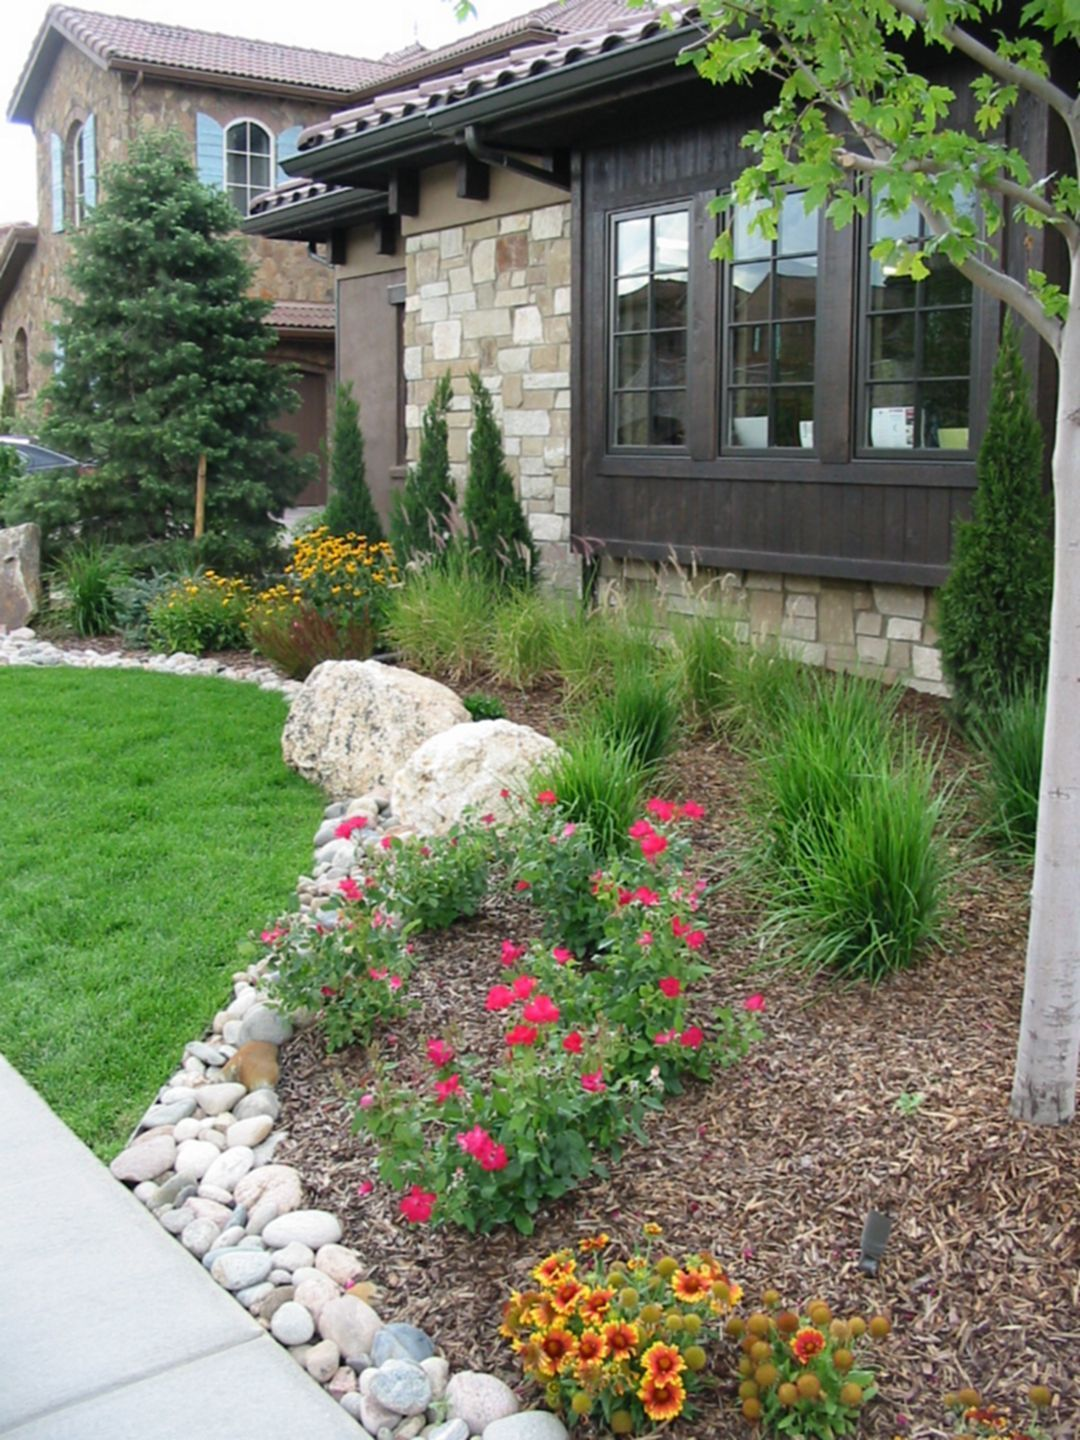 34 Simple But Effective Front Yard Landscaping Ideas On A